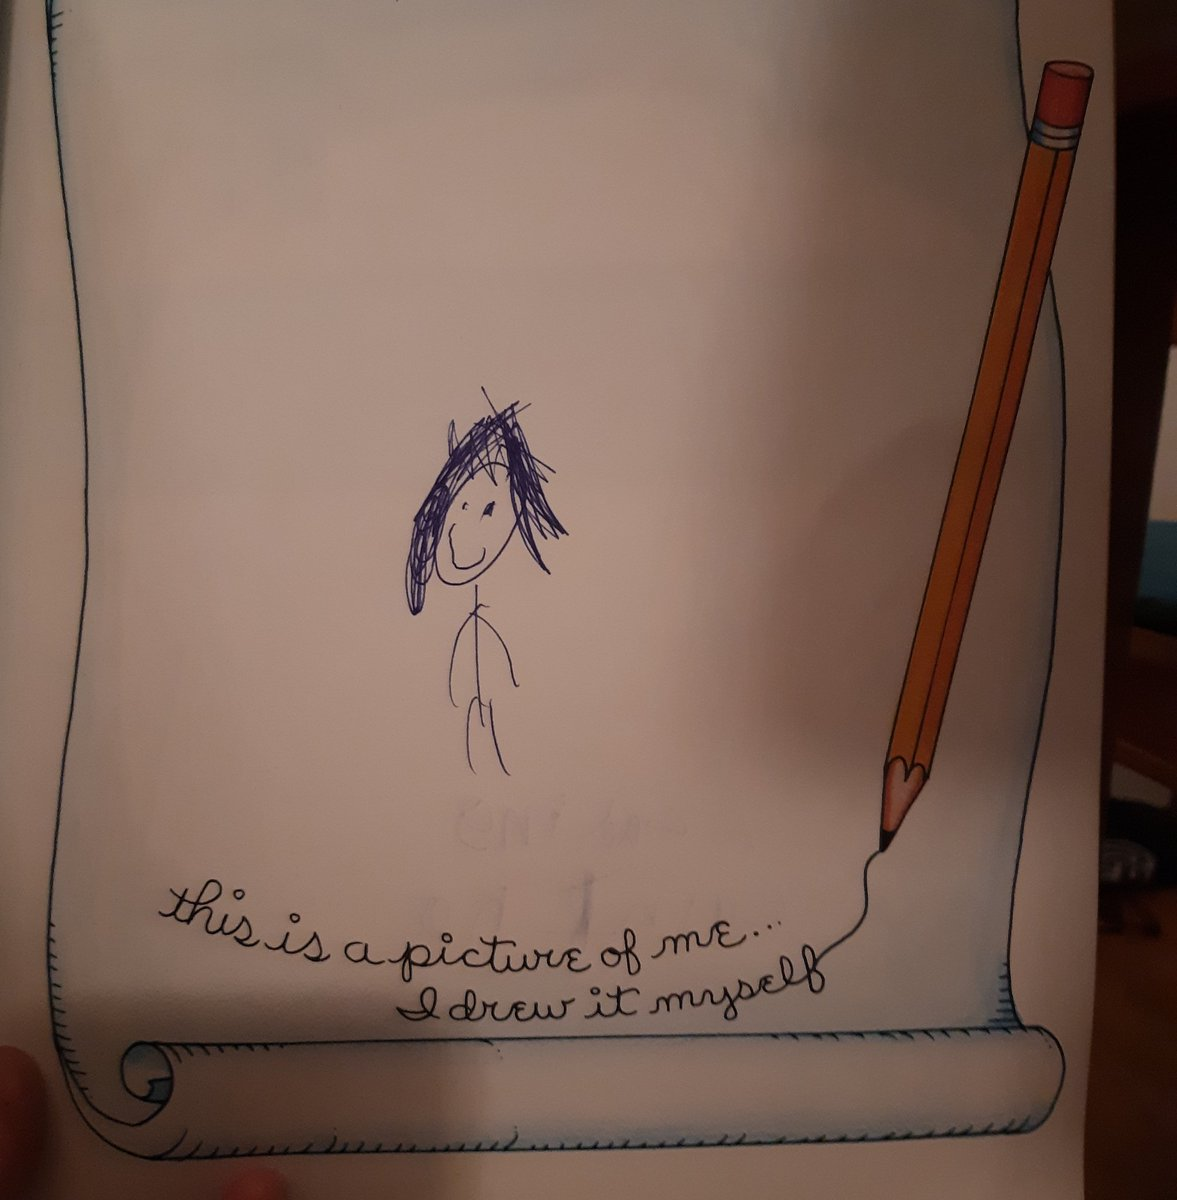 I went through a box of childhood ephemera and found the answer to 'Why don't you illustrate your own books?'